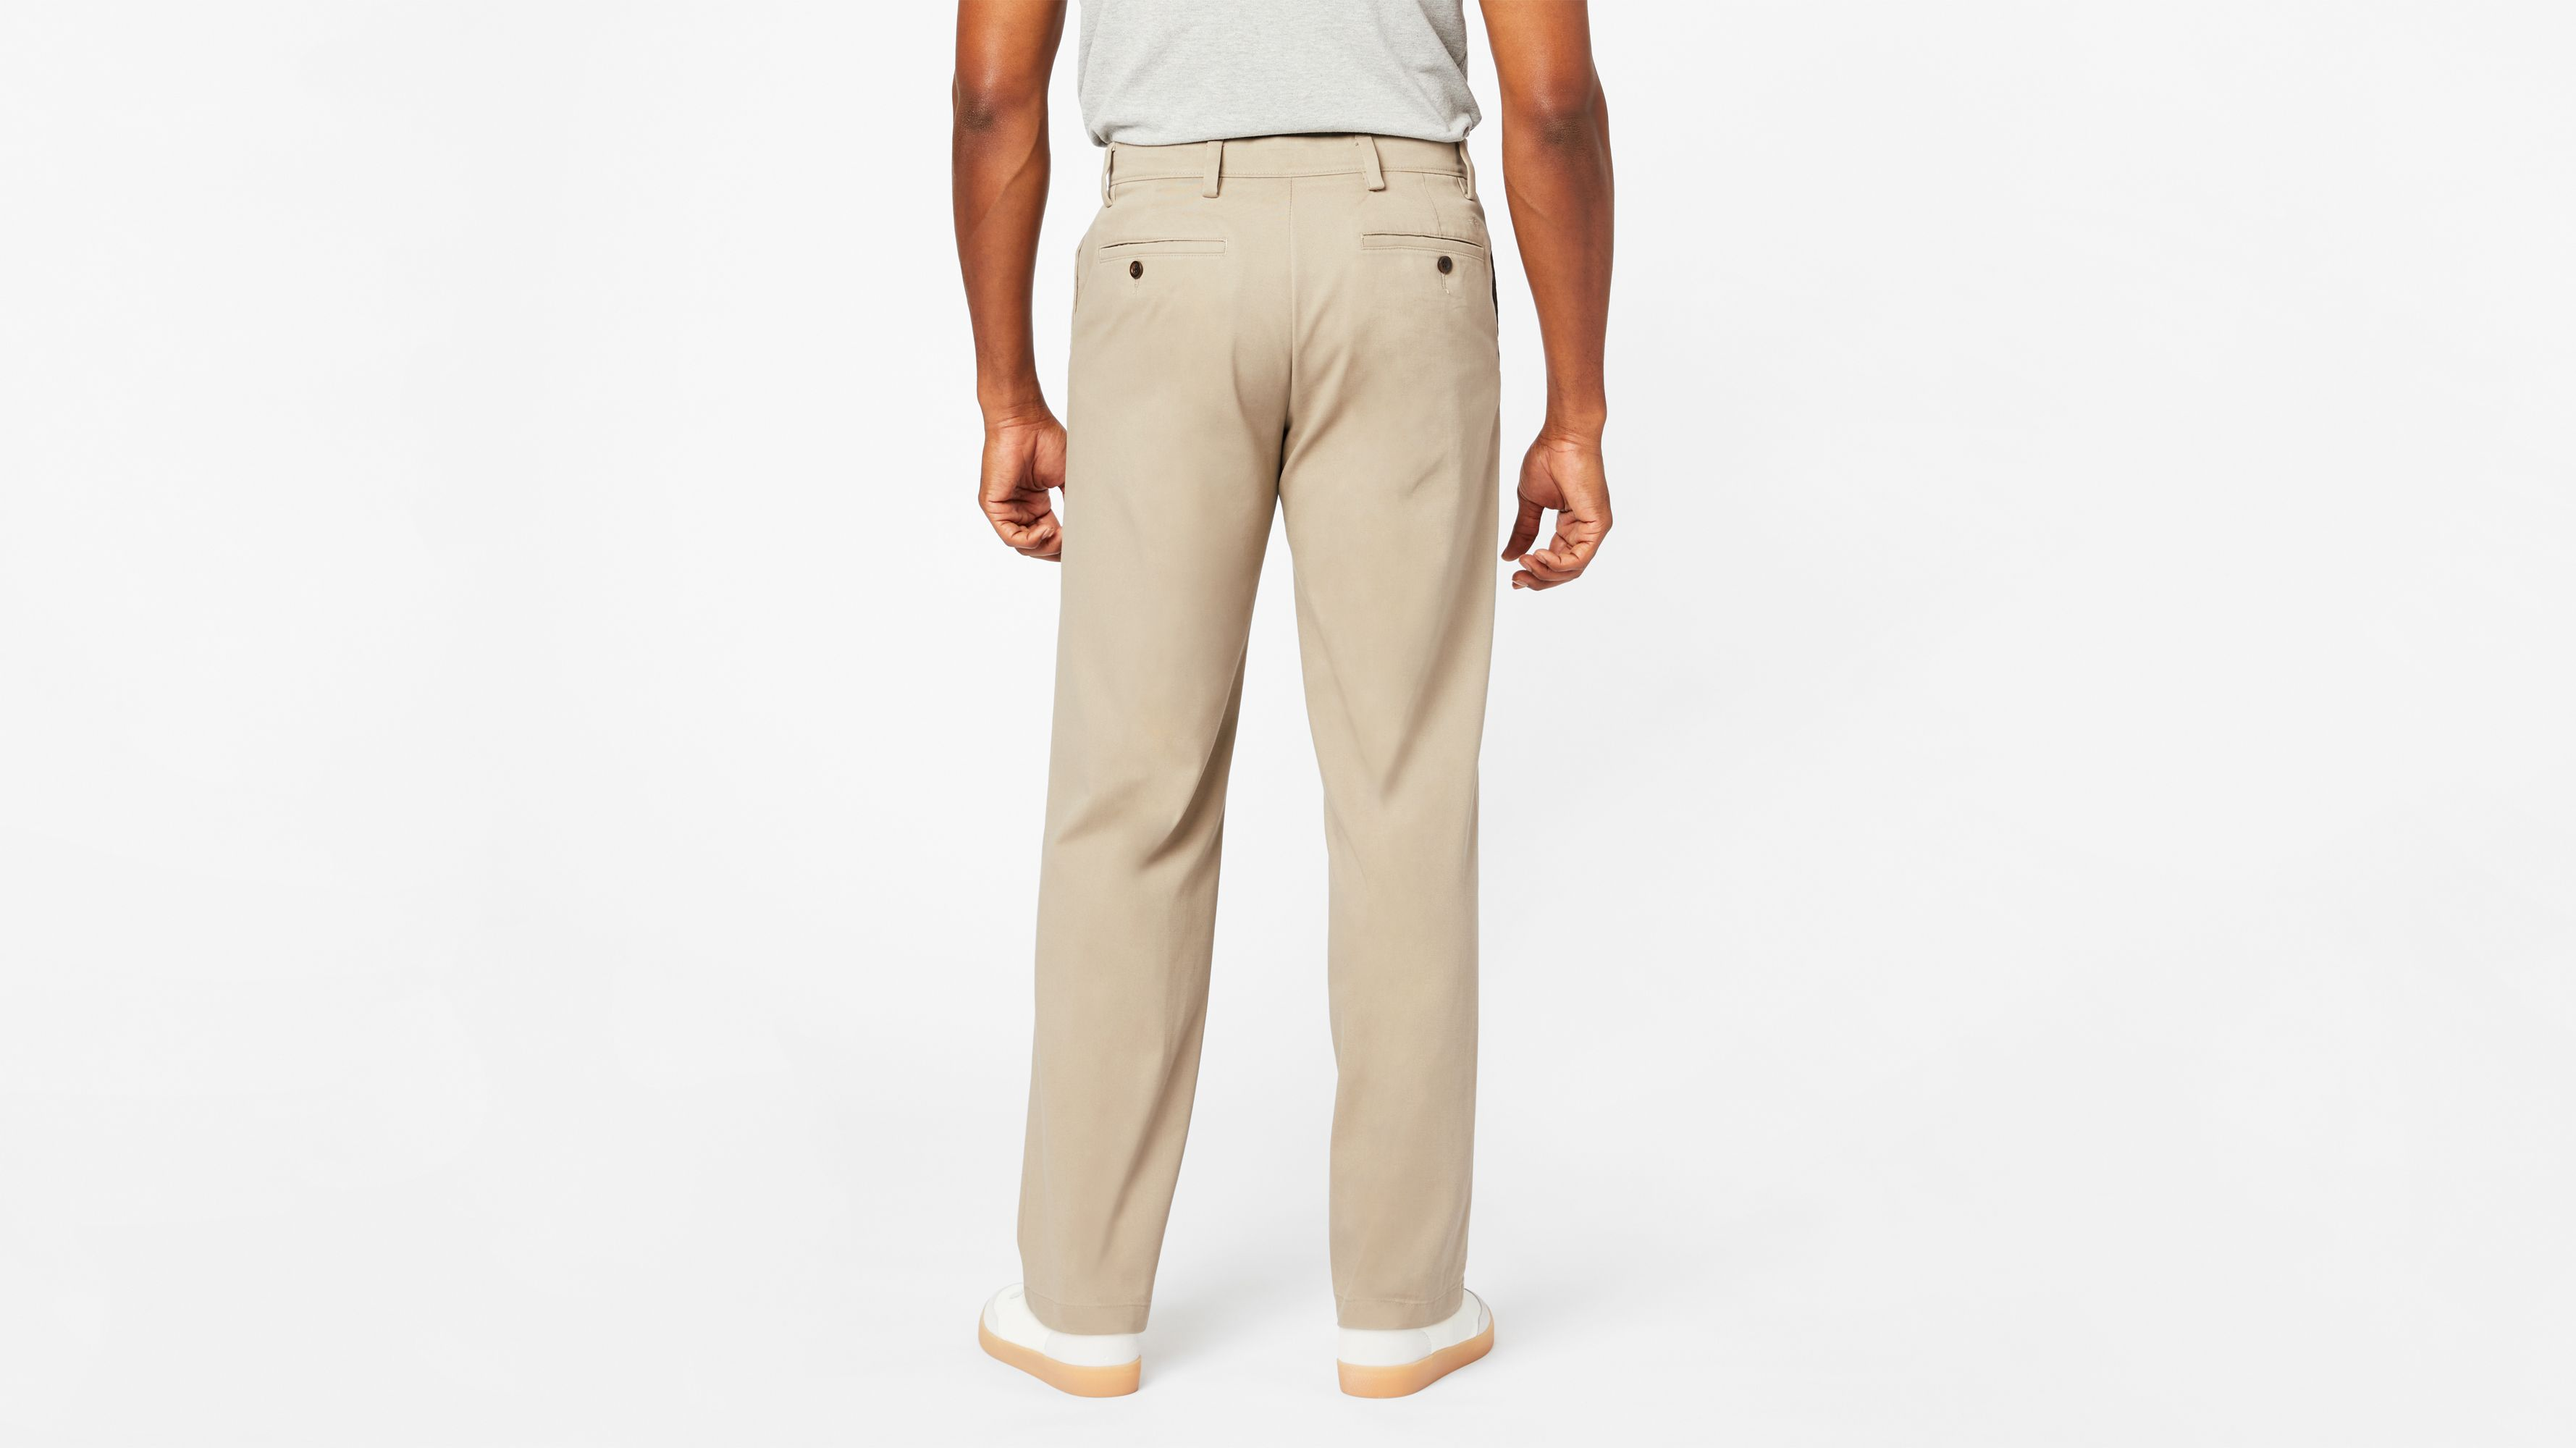 714179ae3dd8 Comfort Khaki Pants, Relaxed Fit - Tan 478740002 | Dockers® US